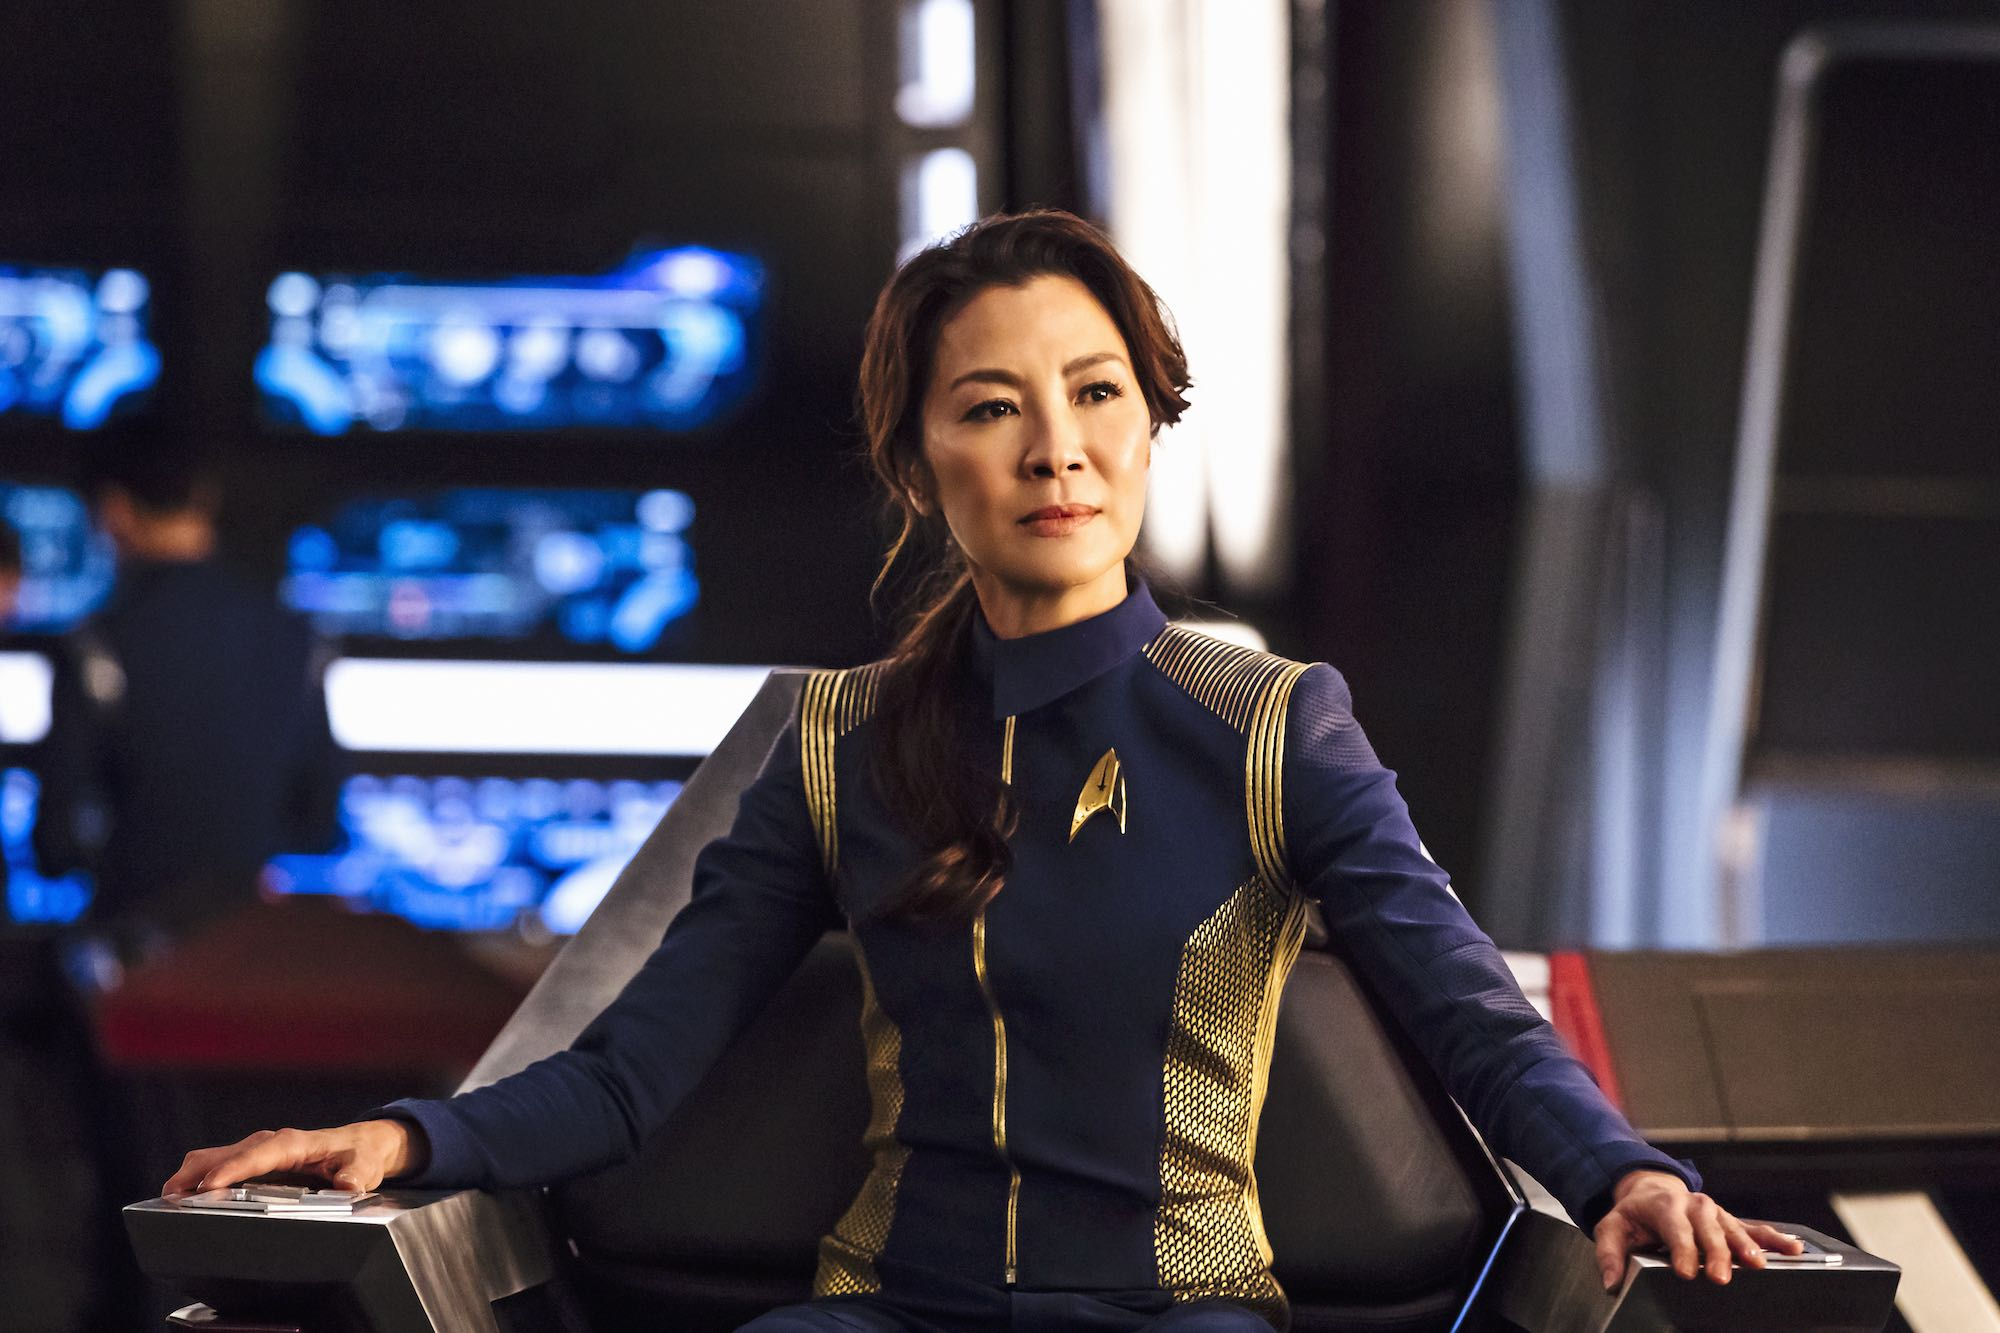 'Star Trek: Discovery' reveals franchise's first openly gay character